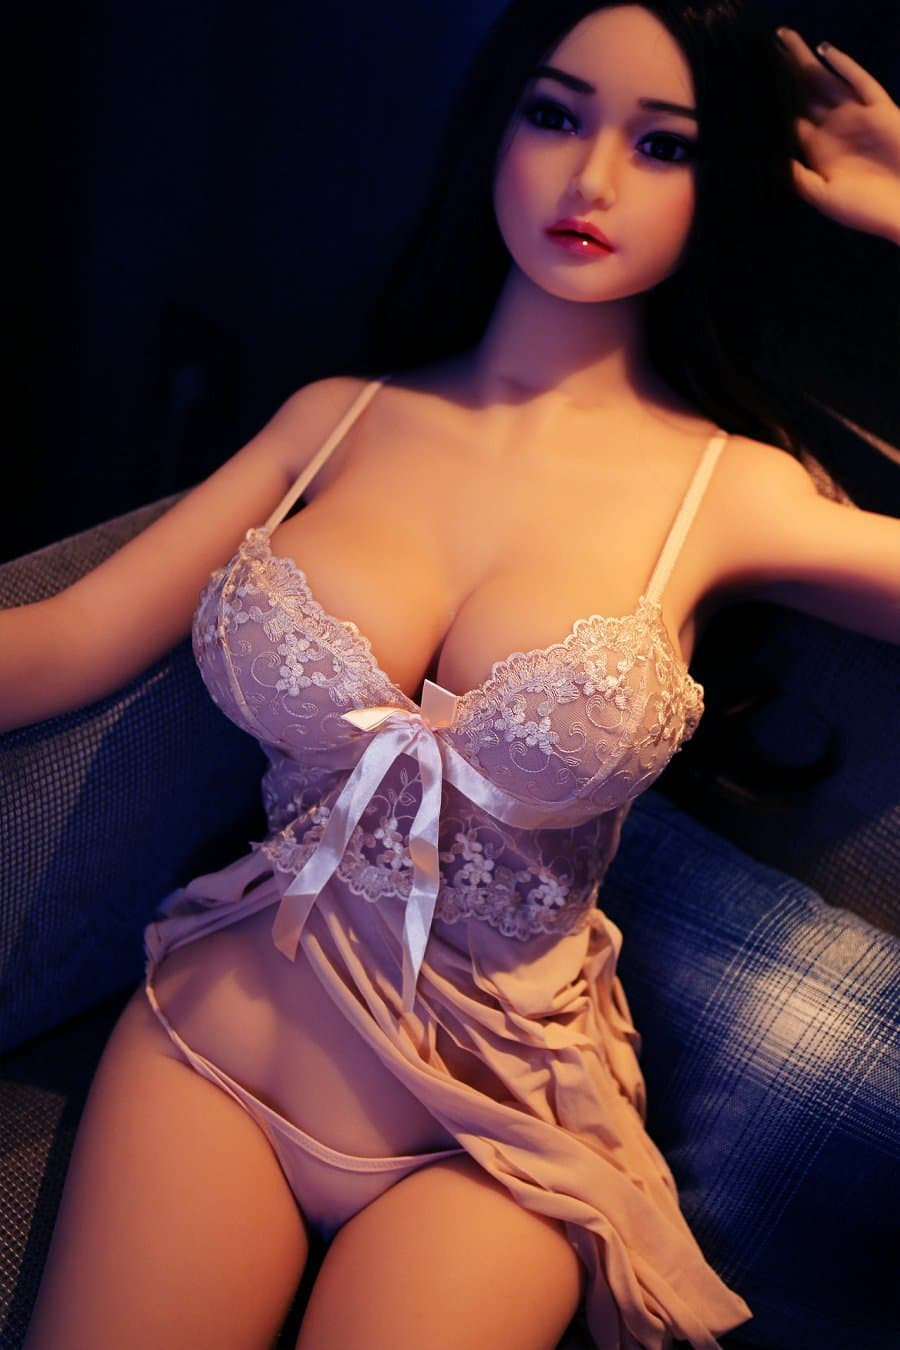 erica 165cm af black hair japanese big boobs skinny tpe asian sex doll(9)